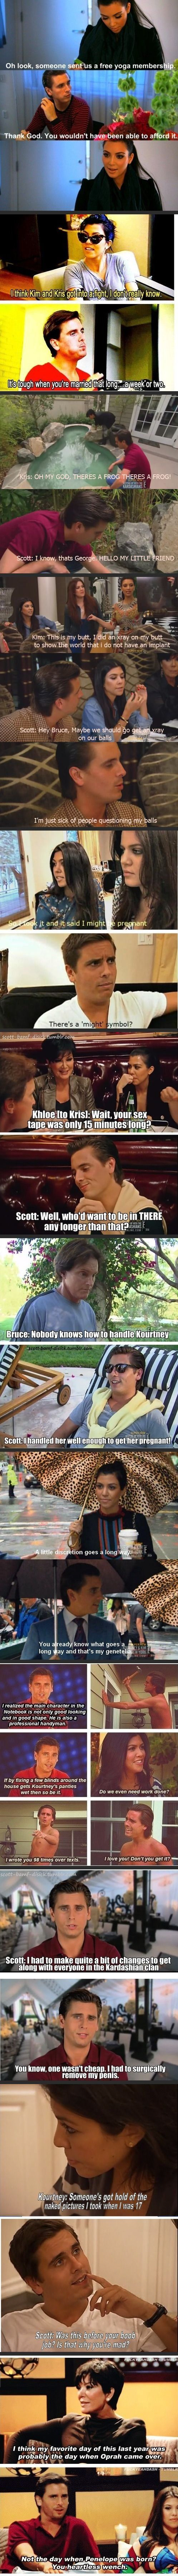 Scott Disick forever slaying the funny game!